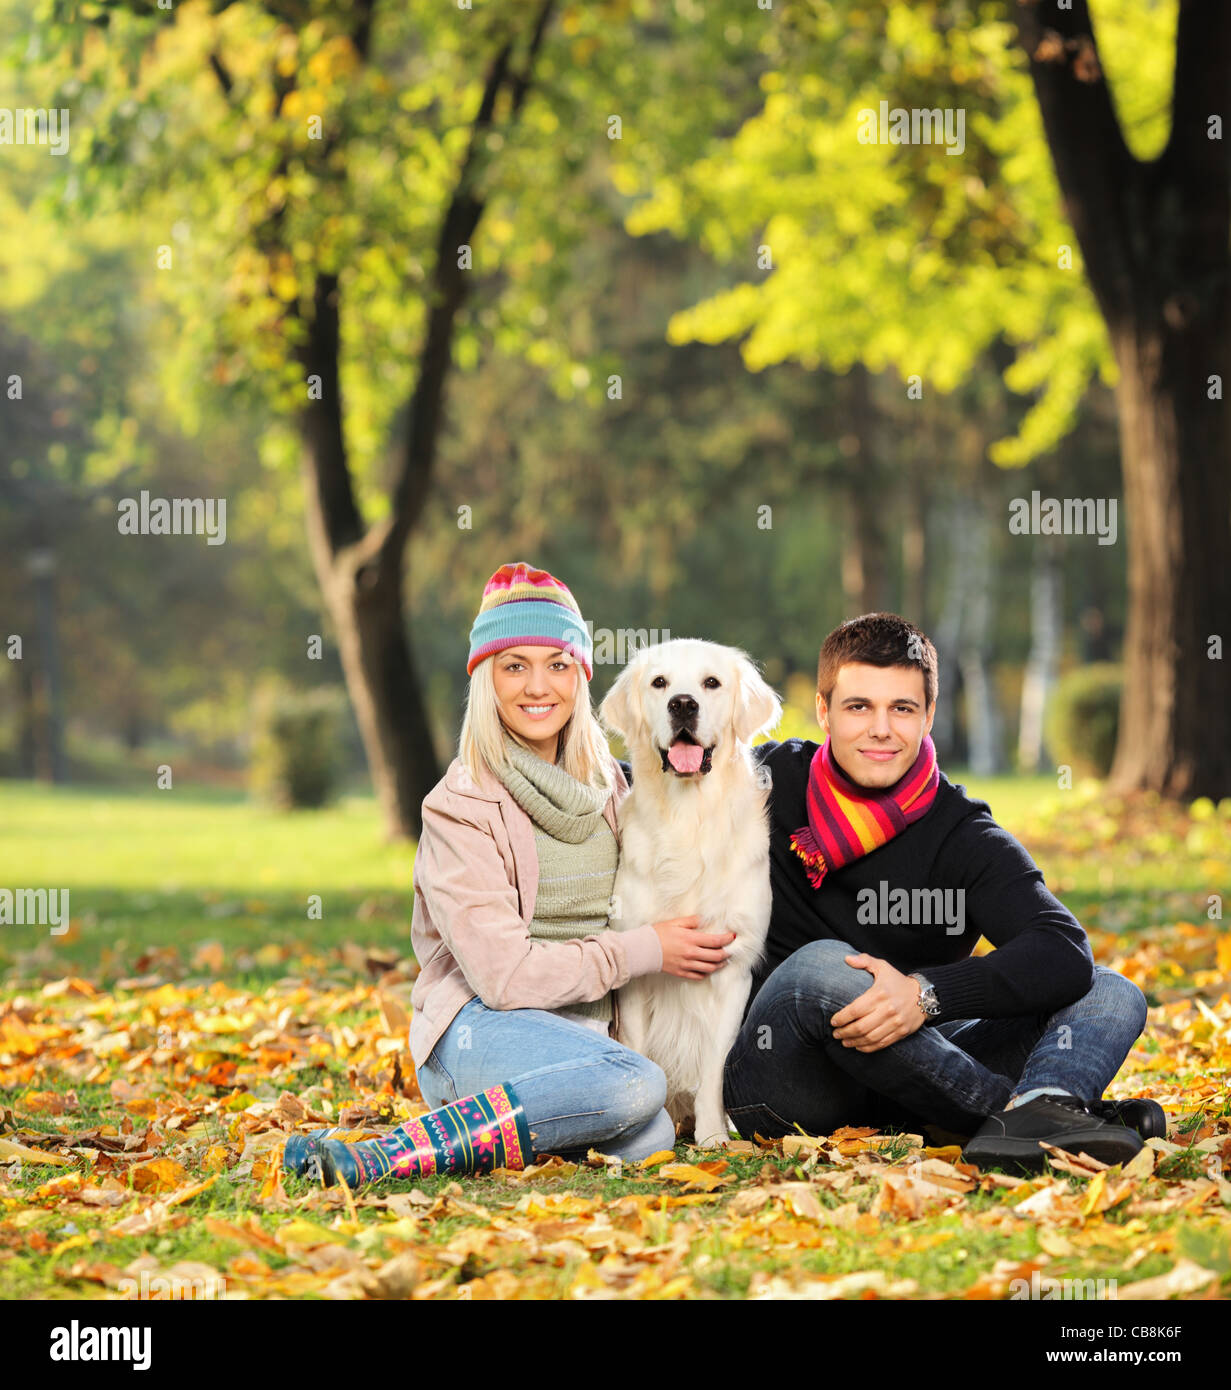 Smiling young man and woman hugging a dog out in the park - Stock Image